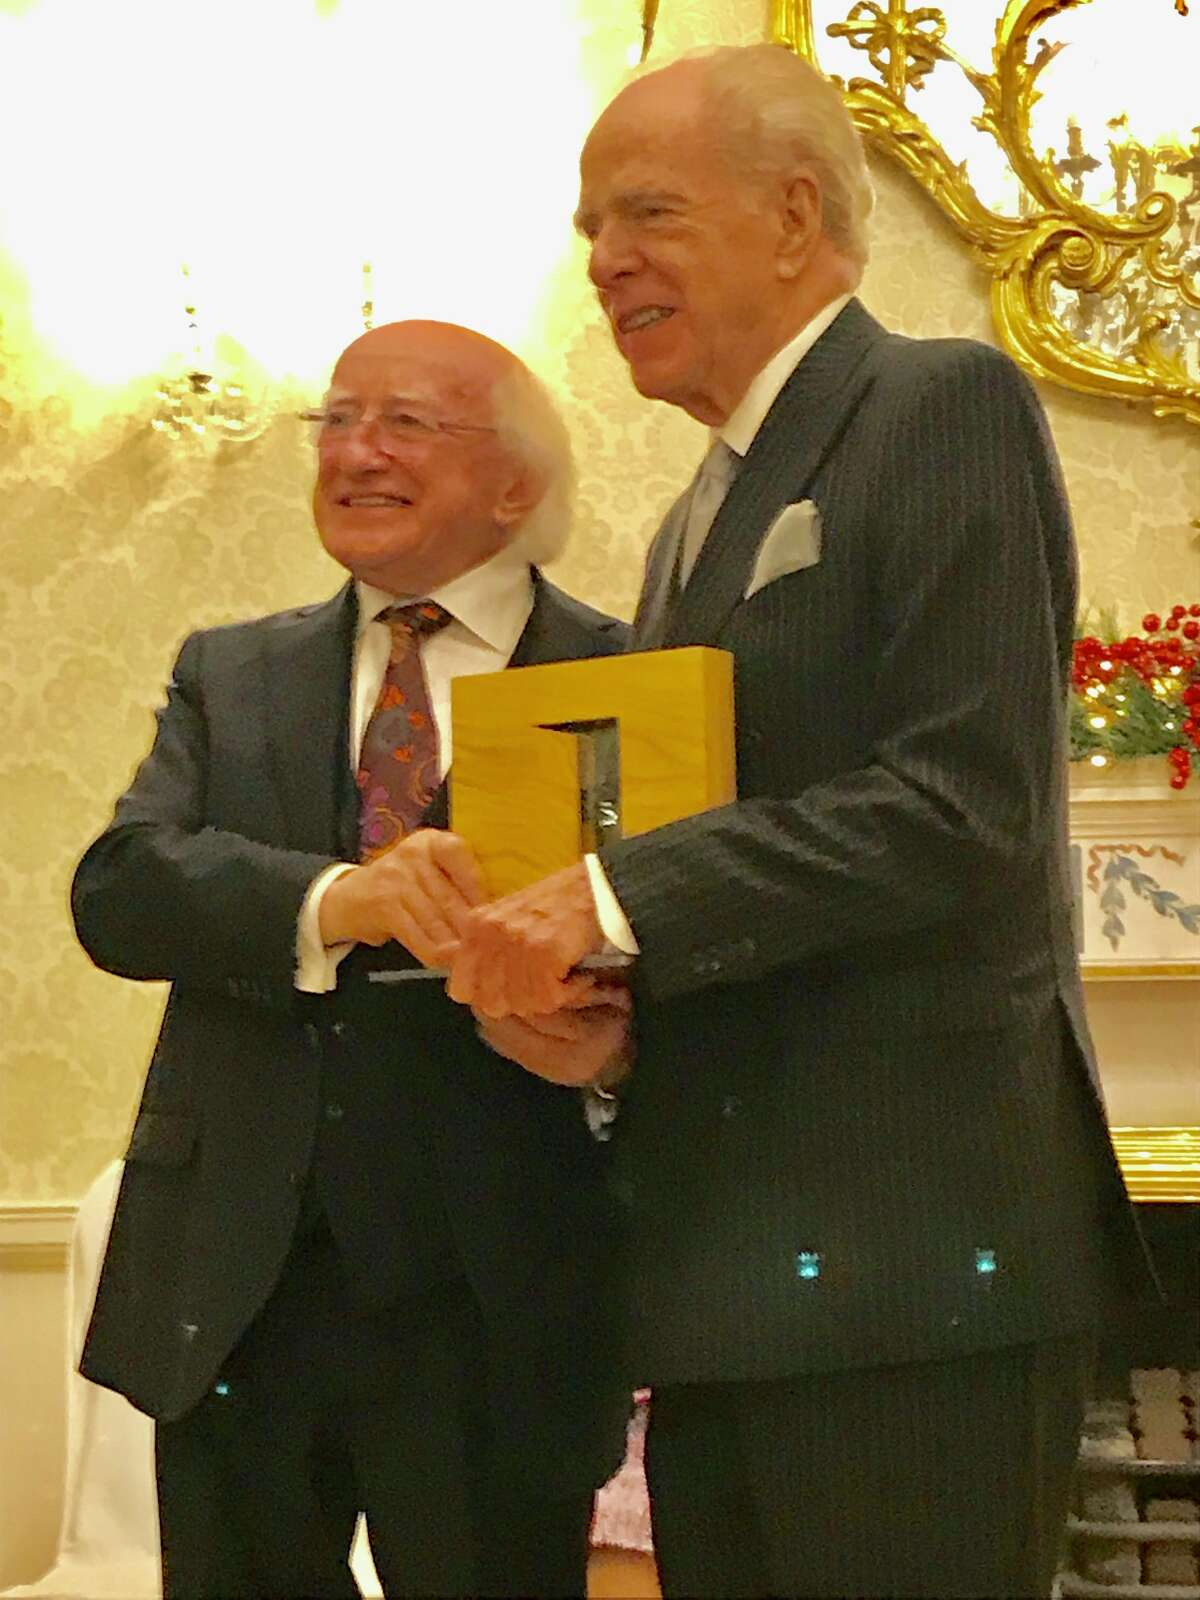 Ireland?'s President Michael D. Higgins presents William Kennedy with the Presidential Distinguished Service Award for the Irish Abroad in Dublin on Thursday, Nov. 29, 2018.